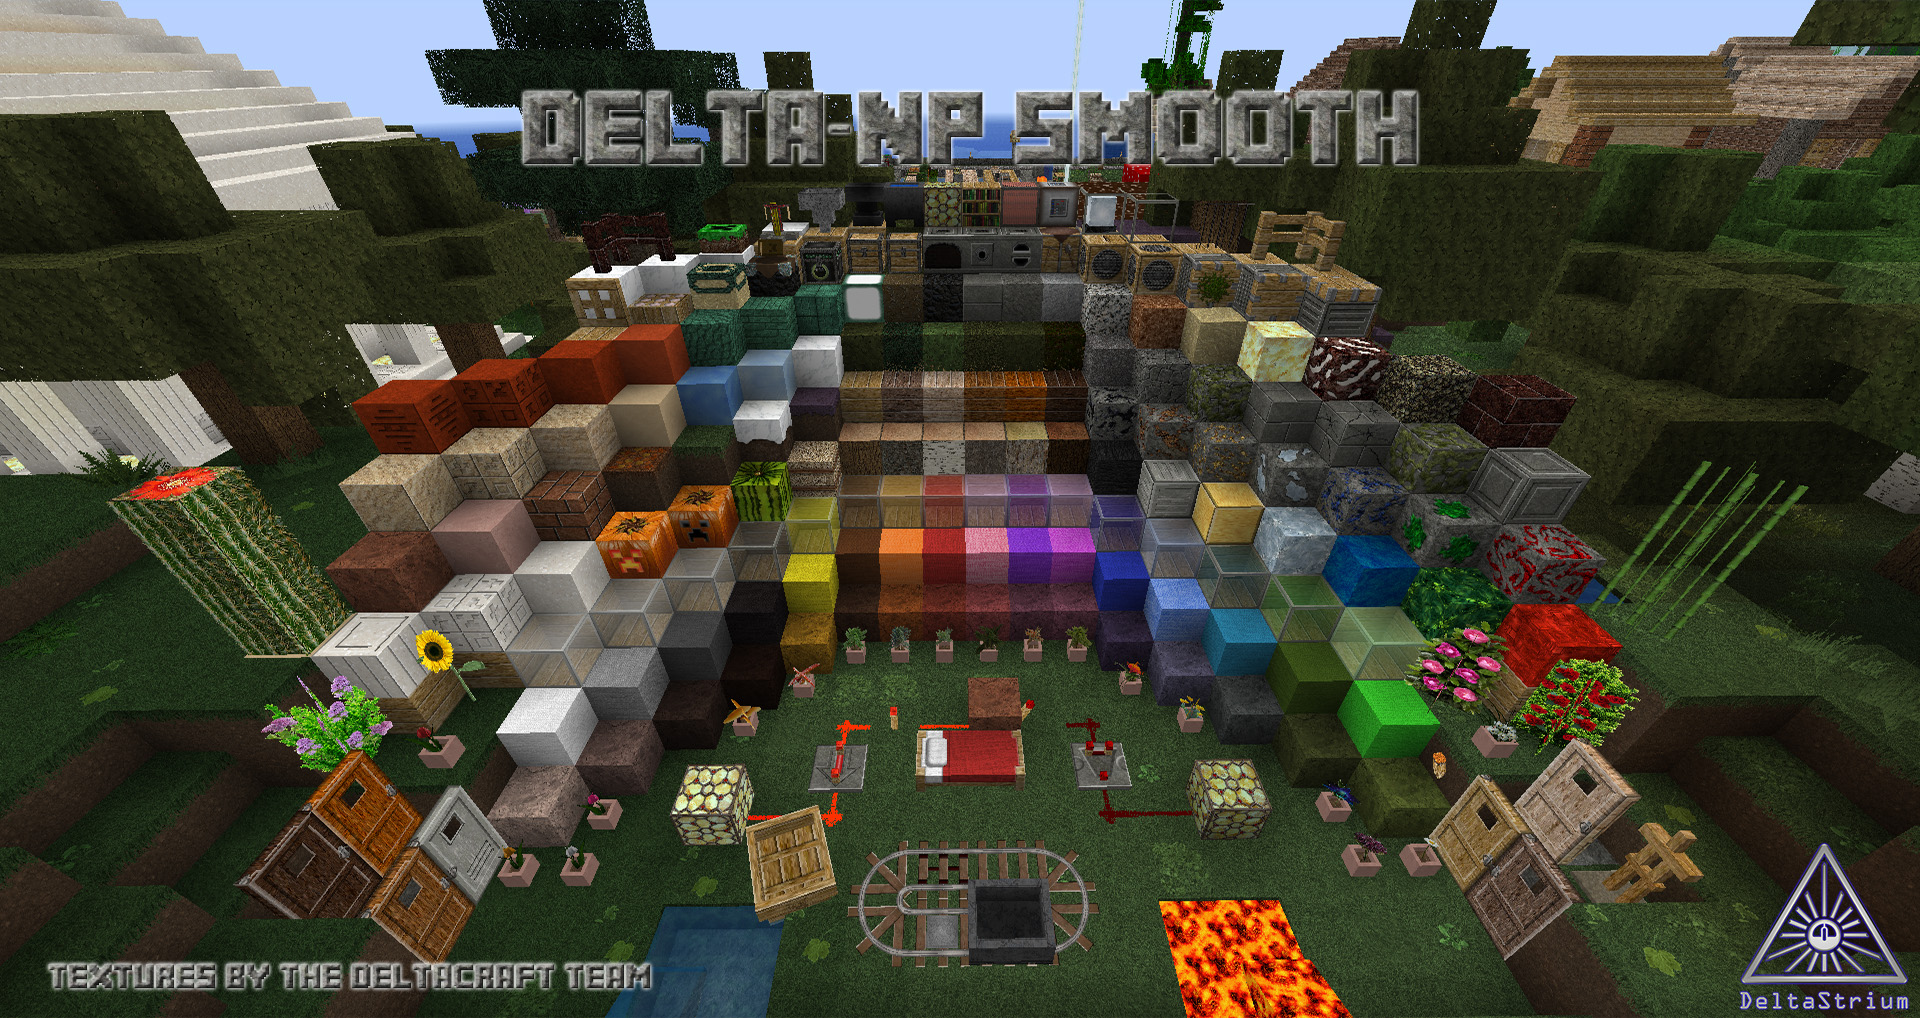 Deltacraft-resource-pack.jpg